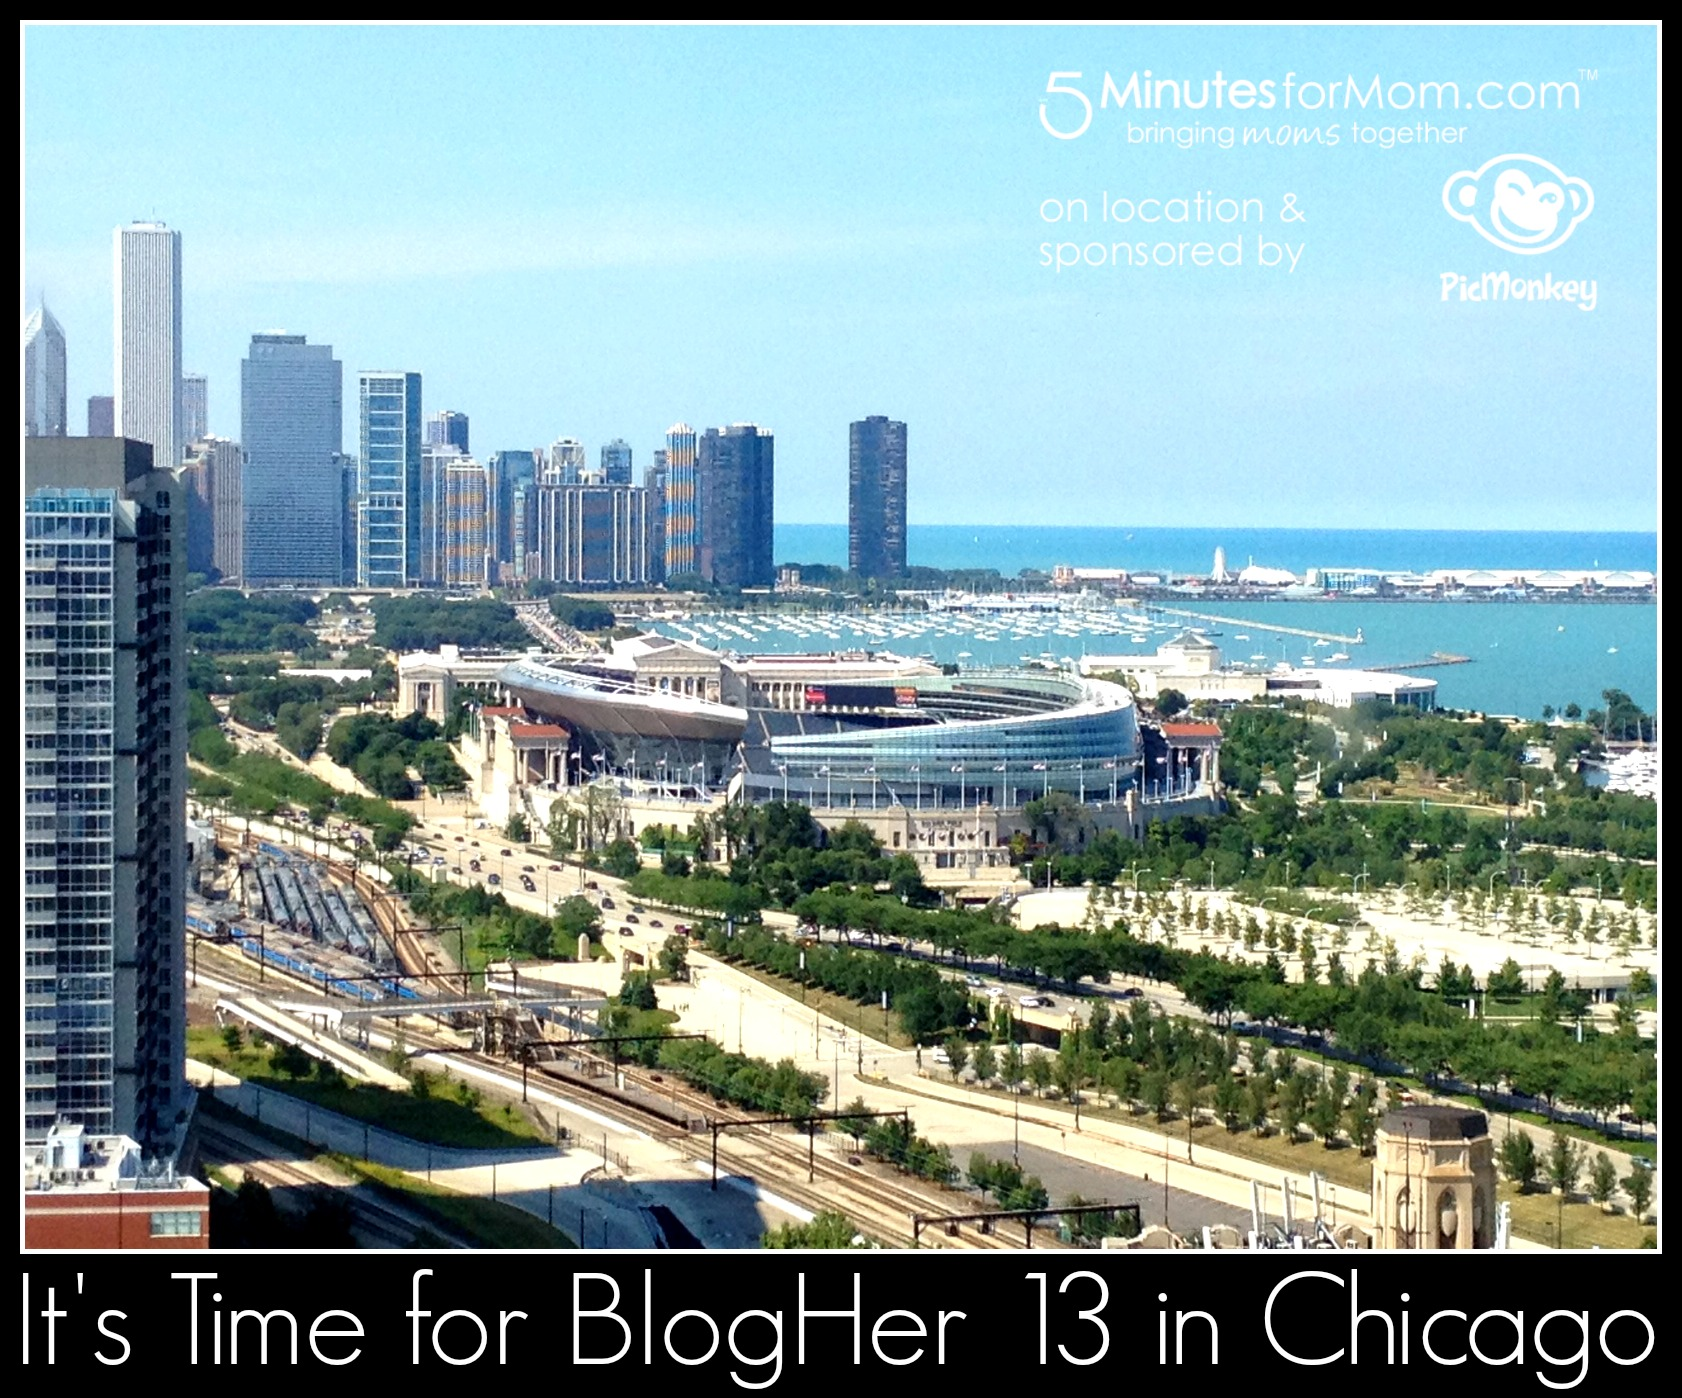 blogher13-its-time